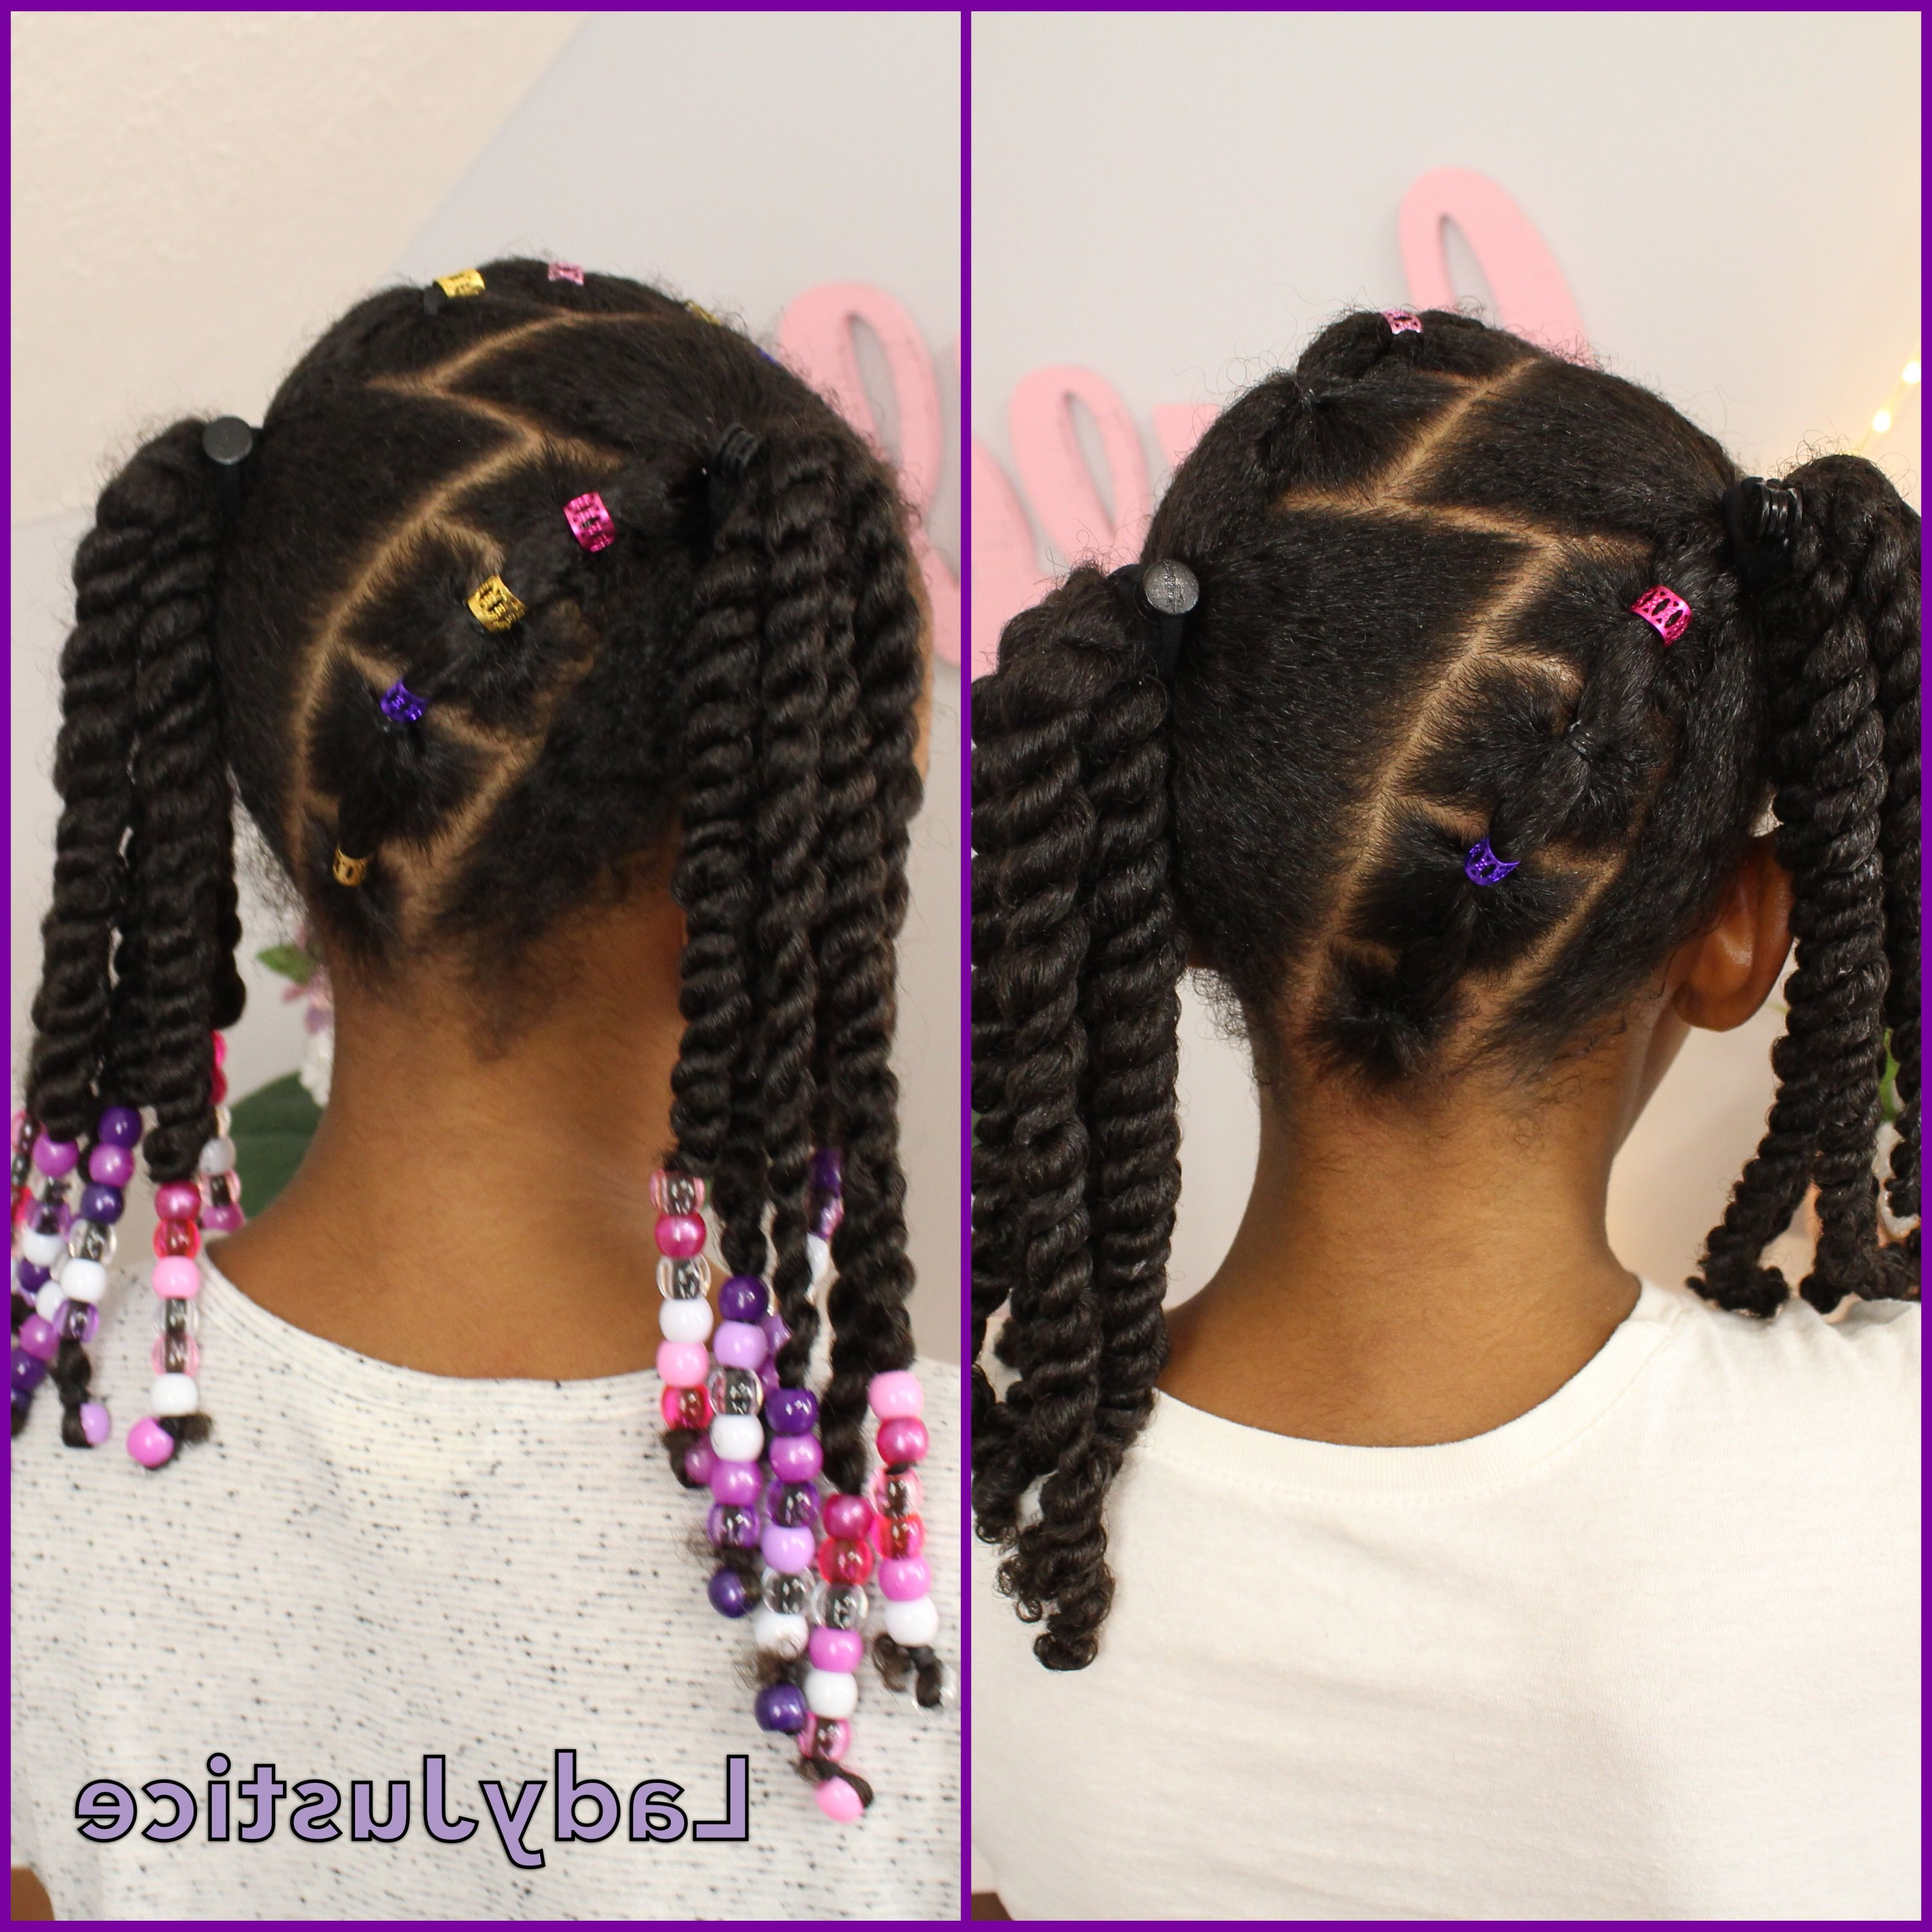 2 Ponytails And 2 Strand Twists Full Tutorial Linked With Regard To Popular Updo Hairstyles With 2 Strand Braid And Curls (View 2 of 20)